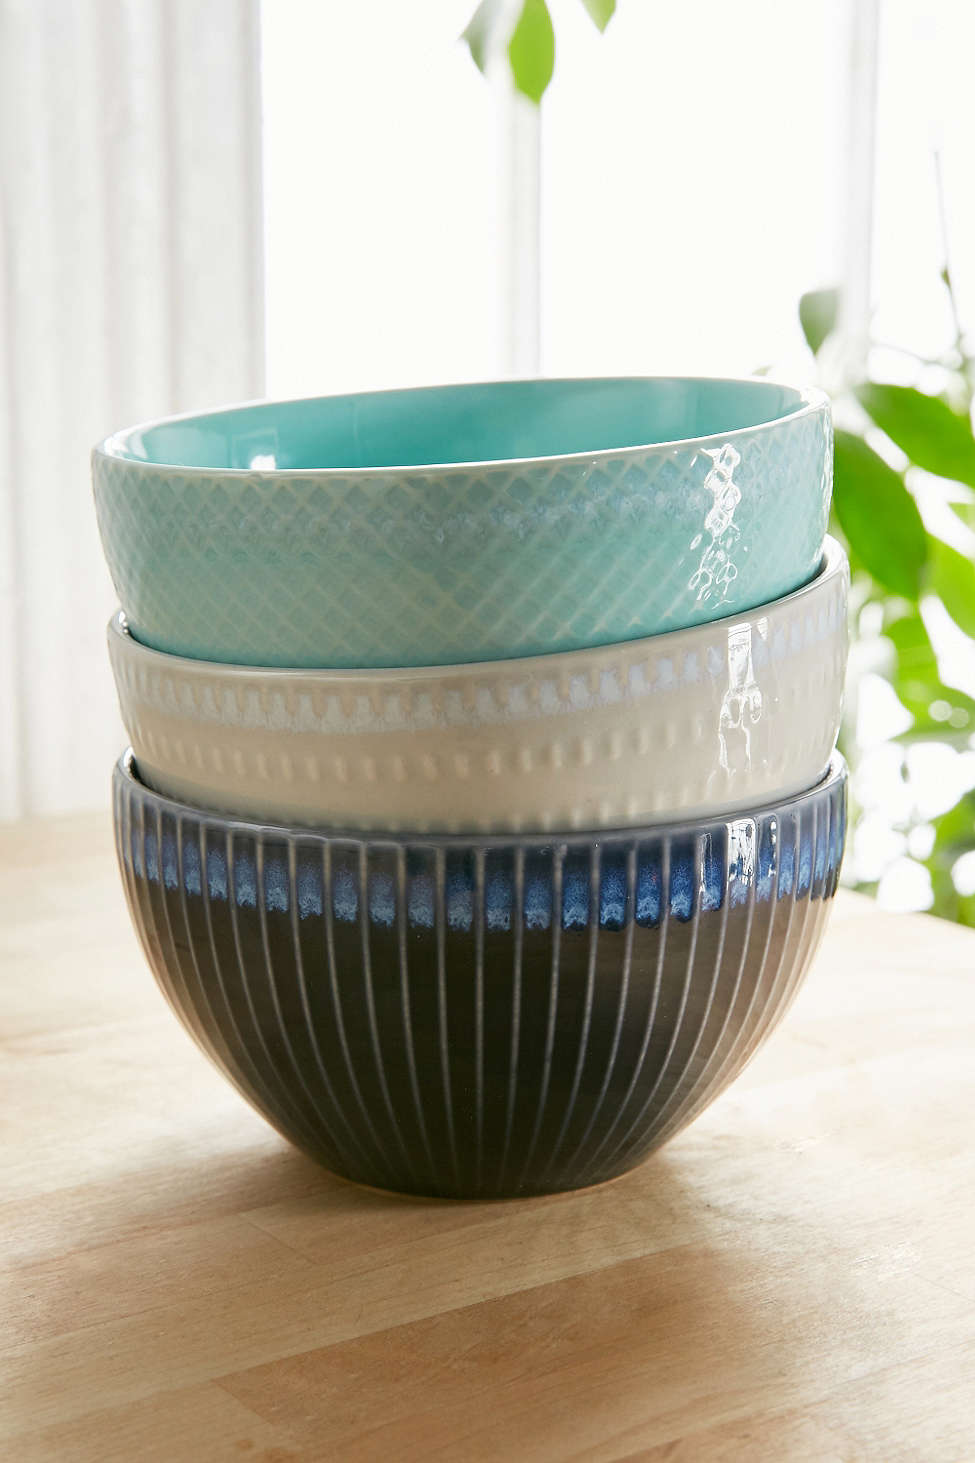 View in gallery Ceramic bowls from Urban Outfitters & Pastels Metallics and Other Spring Tableware Trends